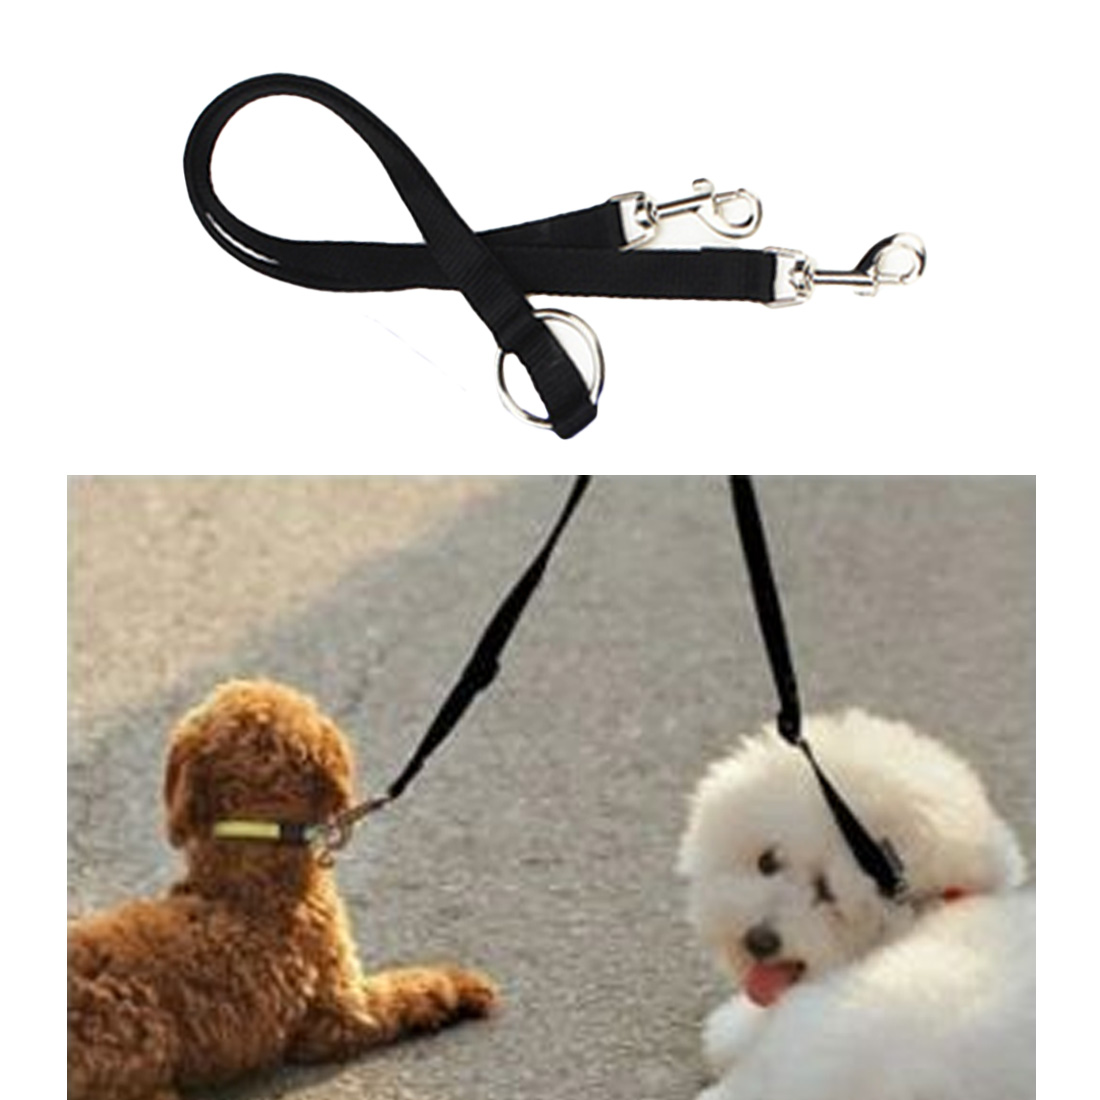 Alert 1.5x90cm Walking 2 Two Dogs Cats Leash Coupler Double Twin Lead Running Black Leash Outdoor Security Training Dog Harness Skillful Manufacture Leashes